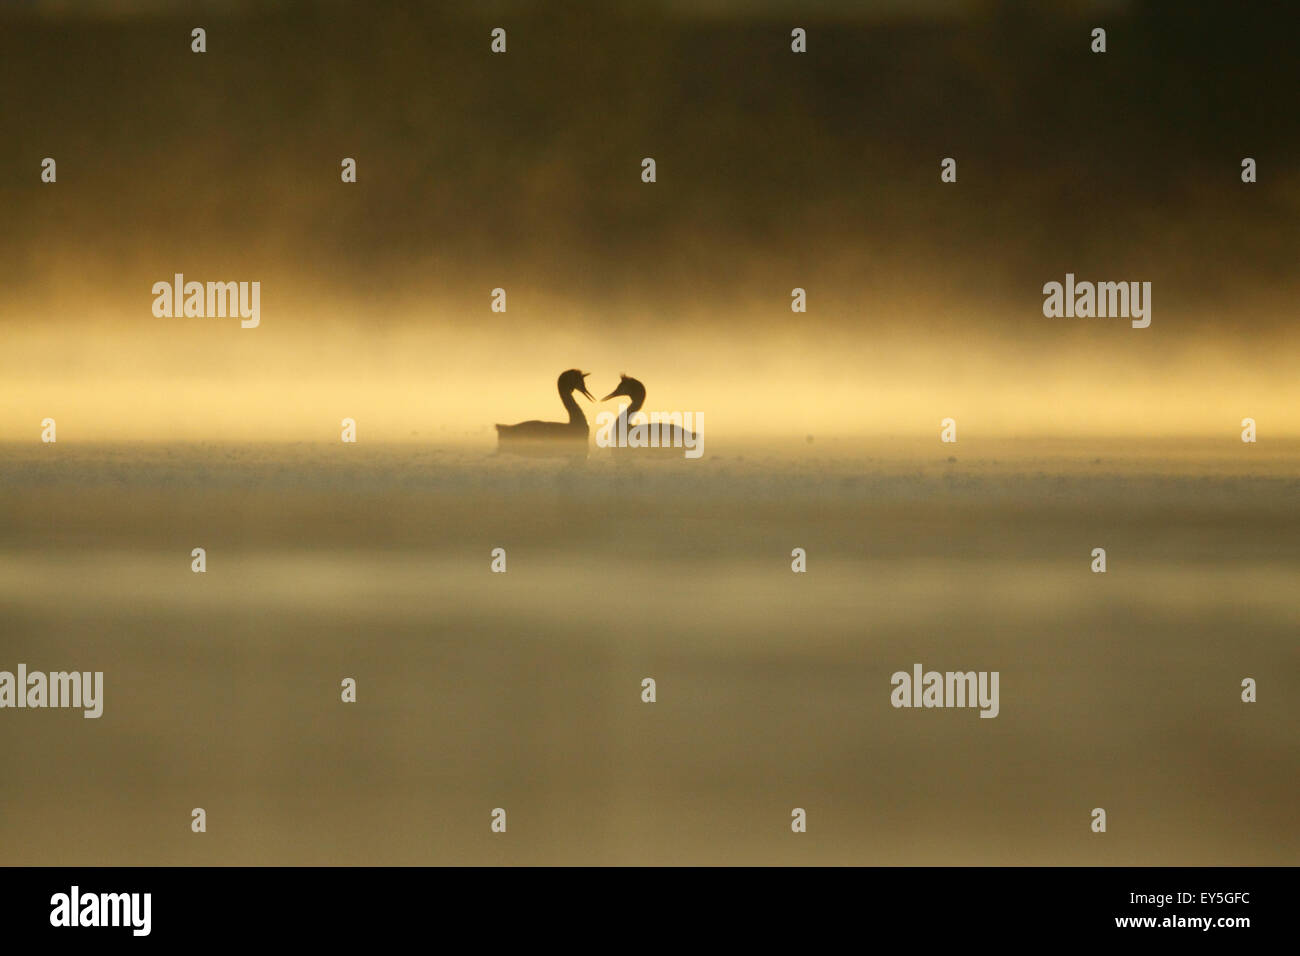 Great Crested Grebes on parade at dawn - Offendorf Alsace France - Stock Image